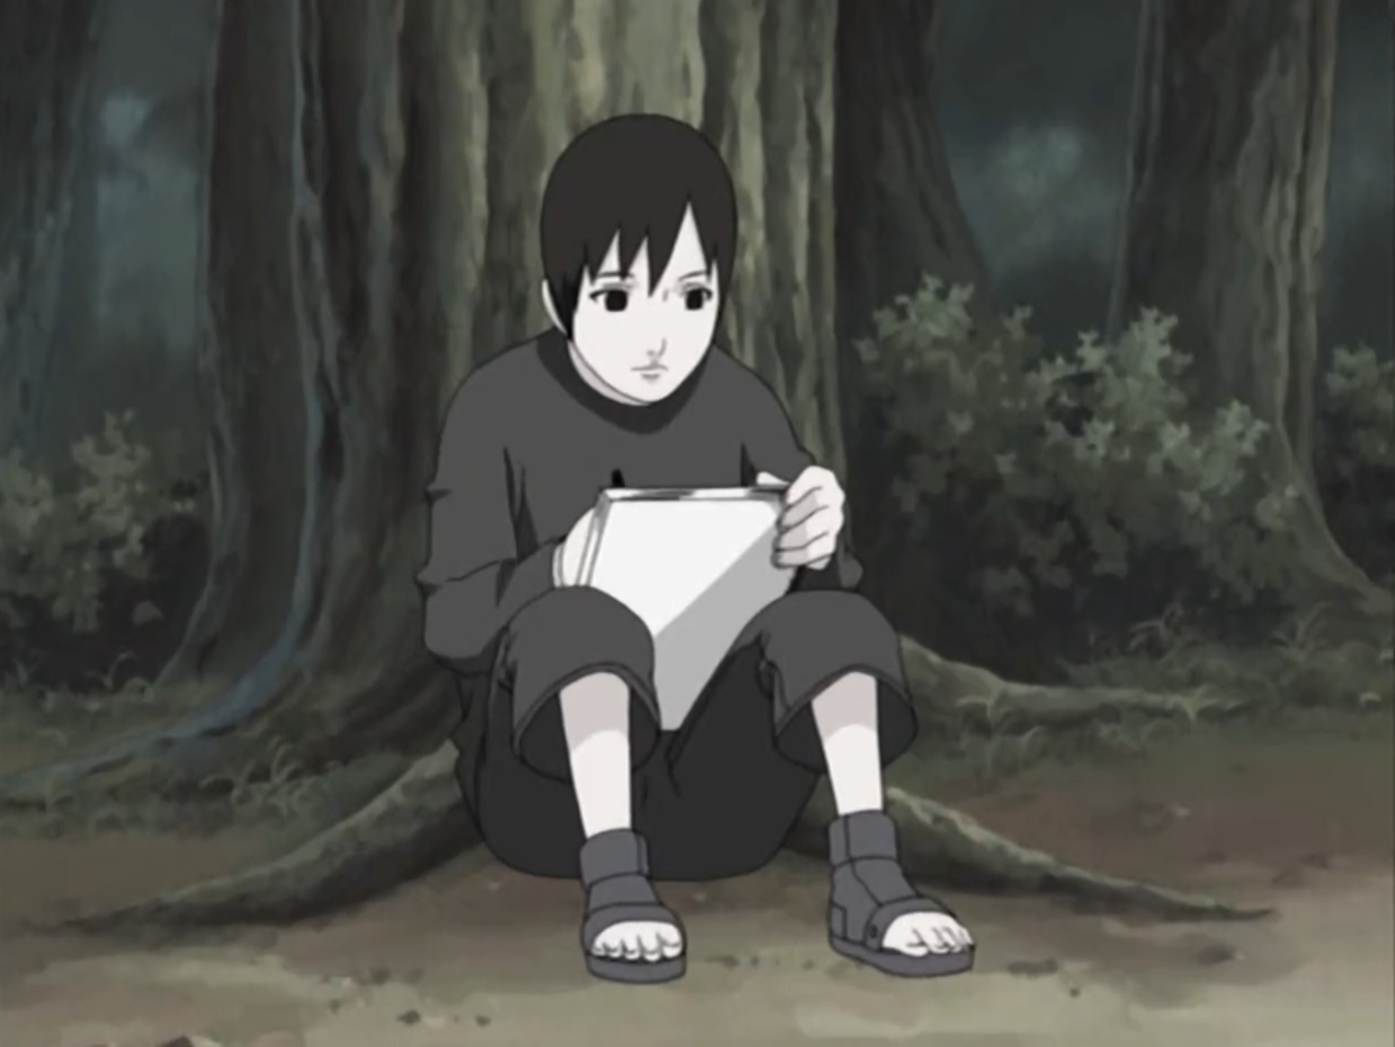 Sai narutopedia fandom powered by wikia sai as a child voltagebd Images